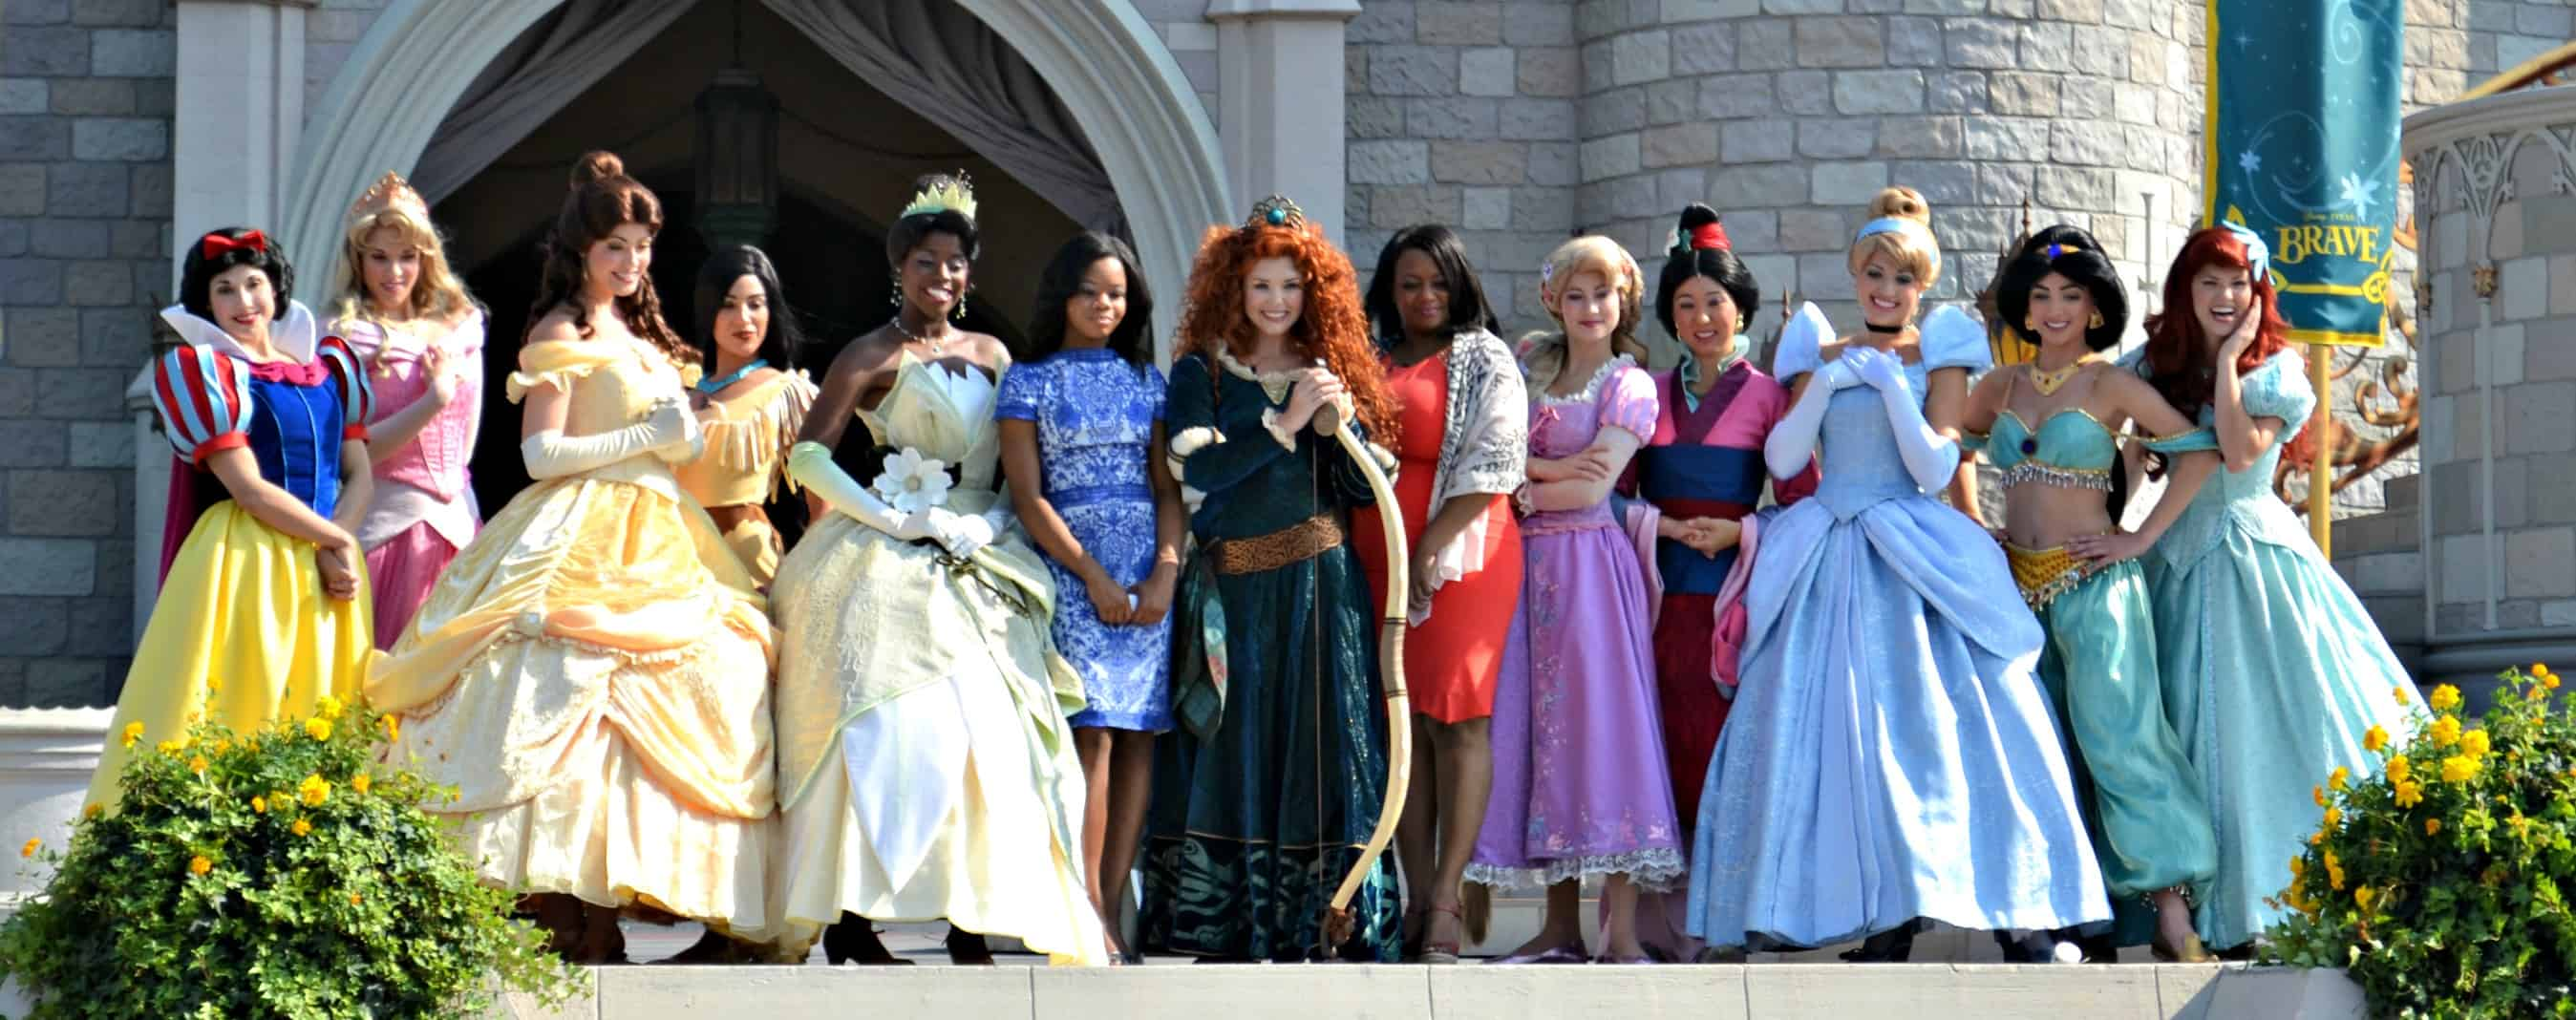 how to become an official disney princess | her campus